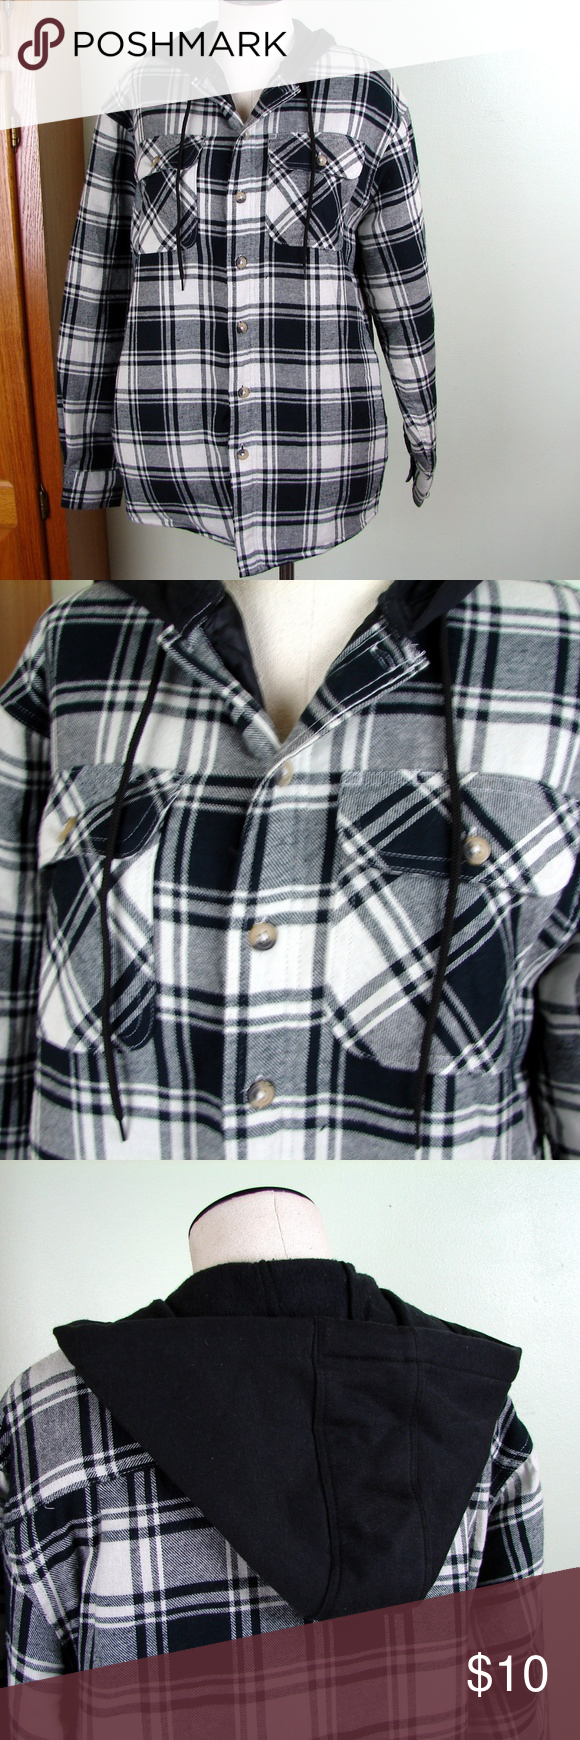 Quilted flannel shirt jacket  Wrangler Flannel shirt jacket quilted hoodie S